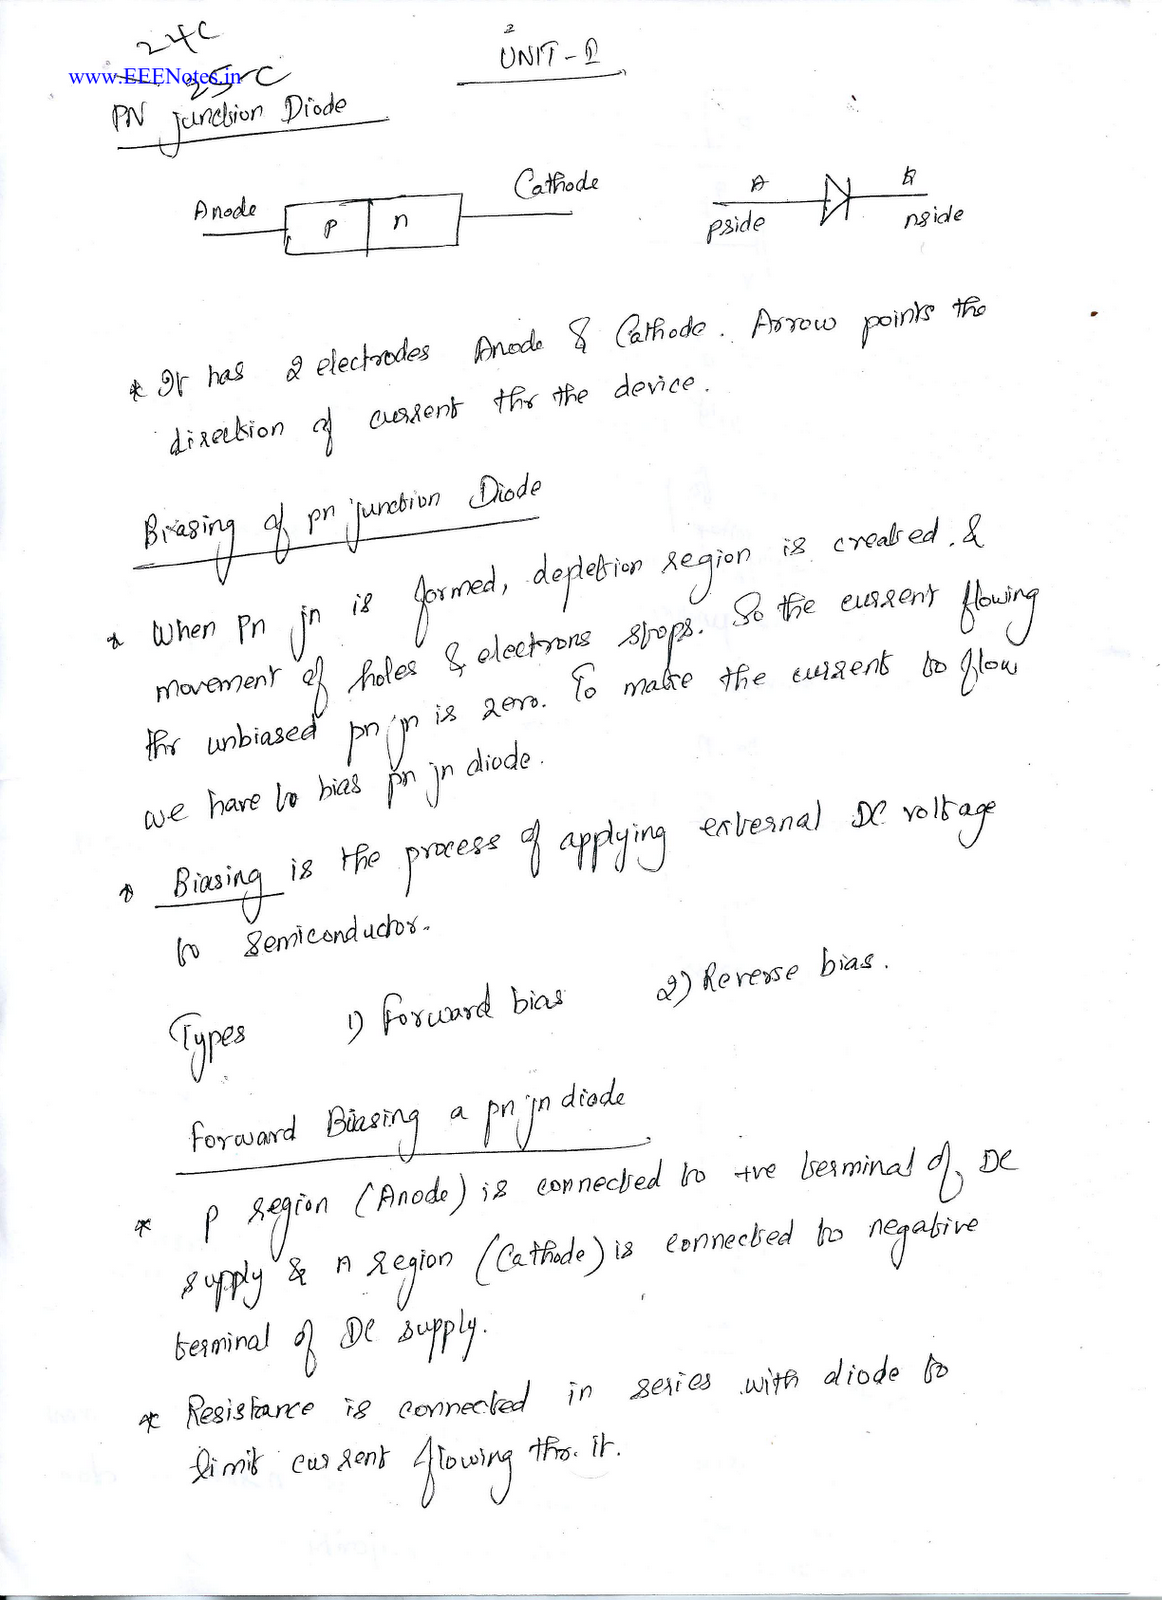 PN Junction Diode - Lecture Notes (Electronic Device and